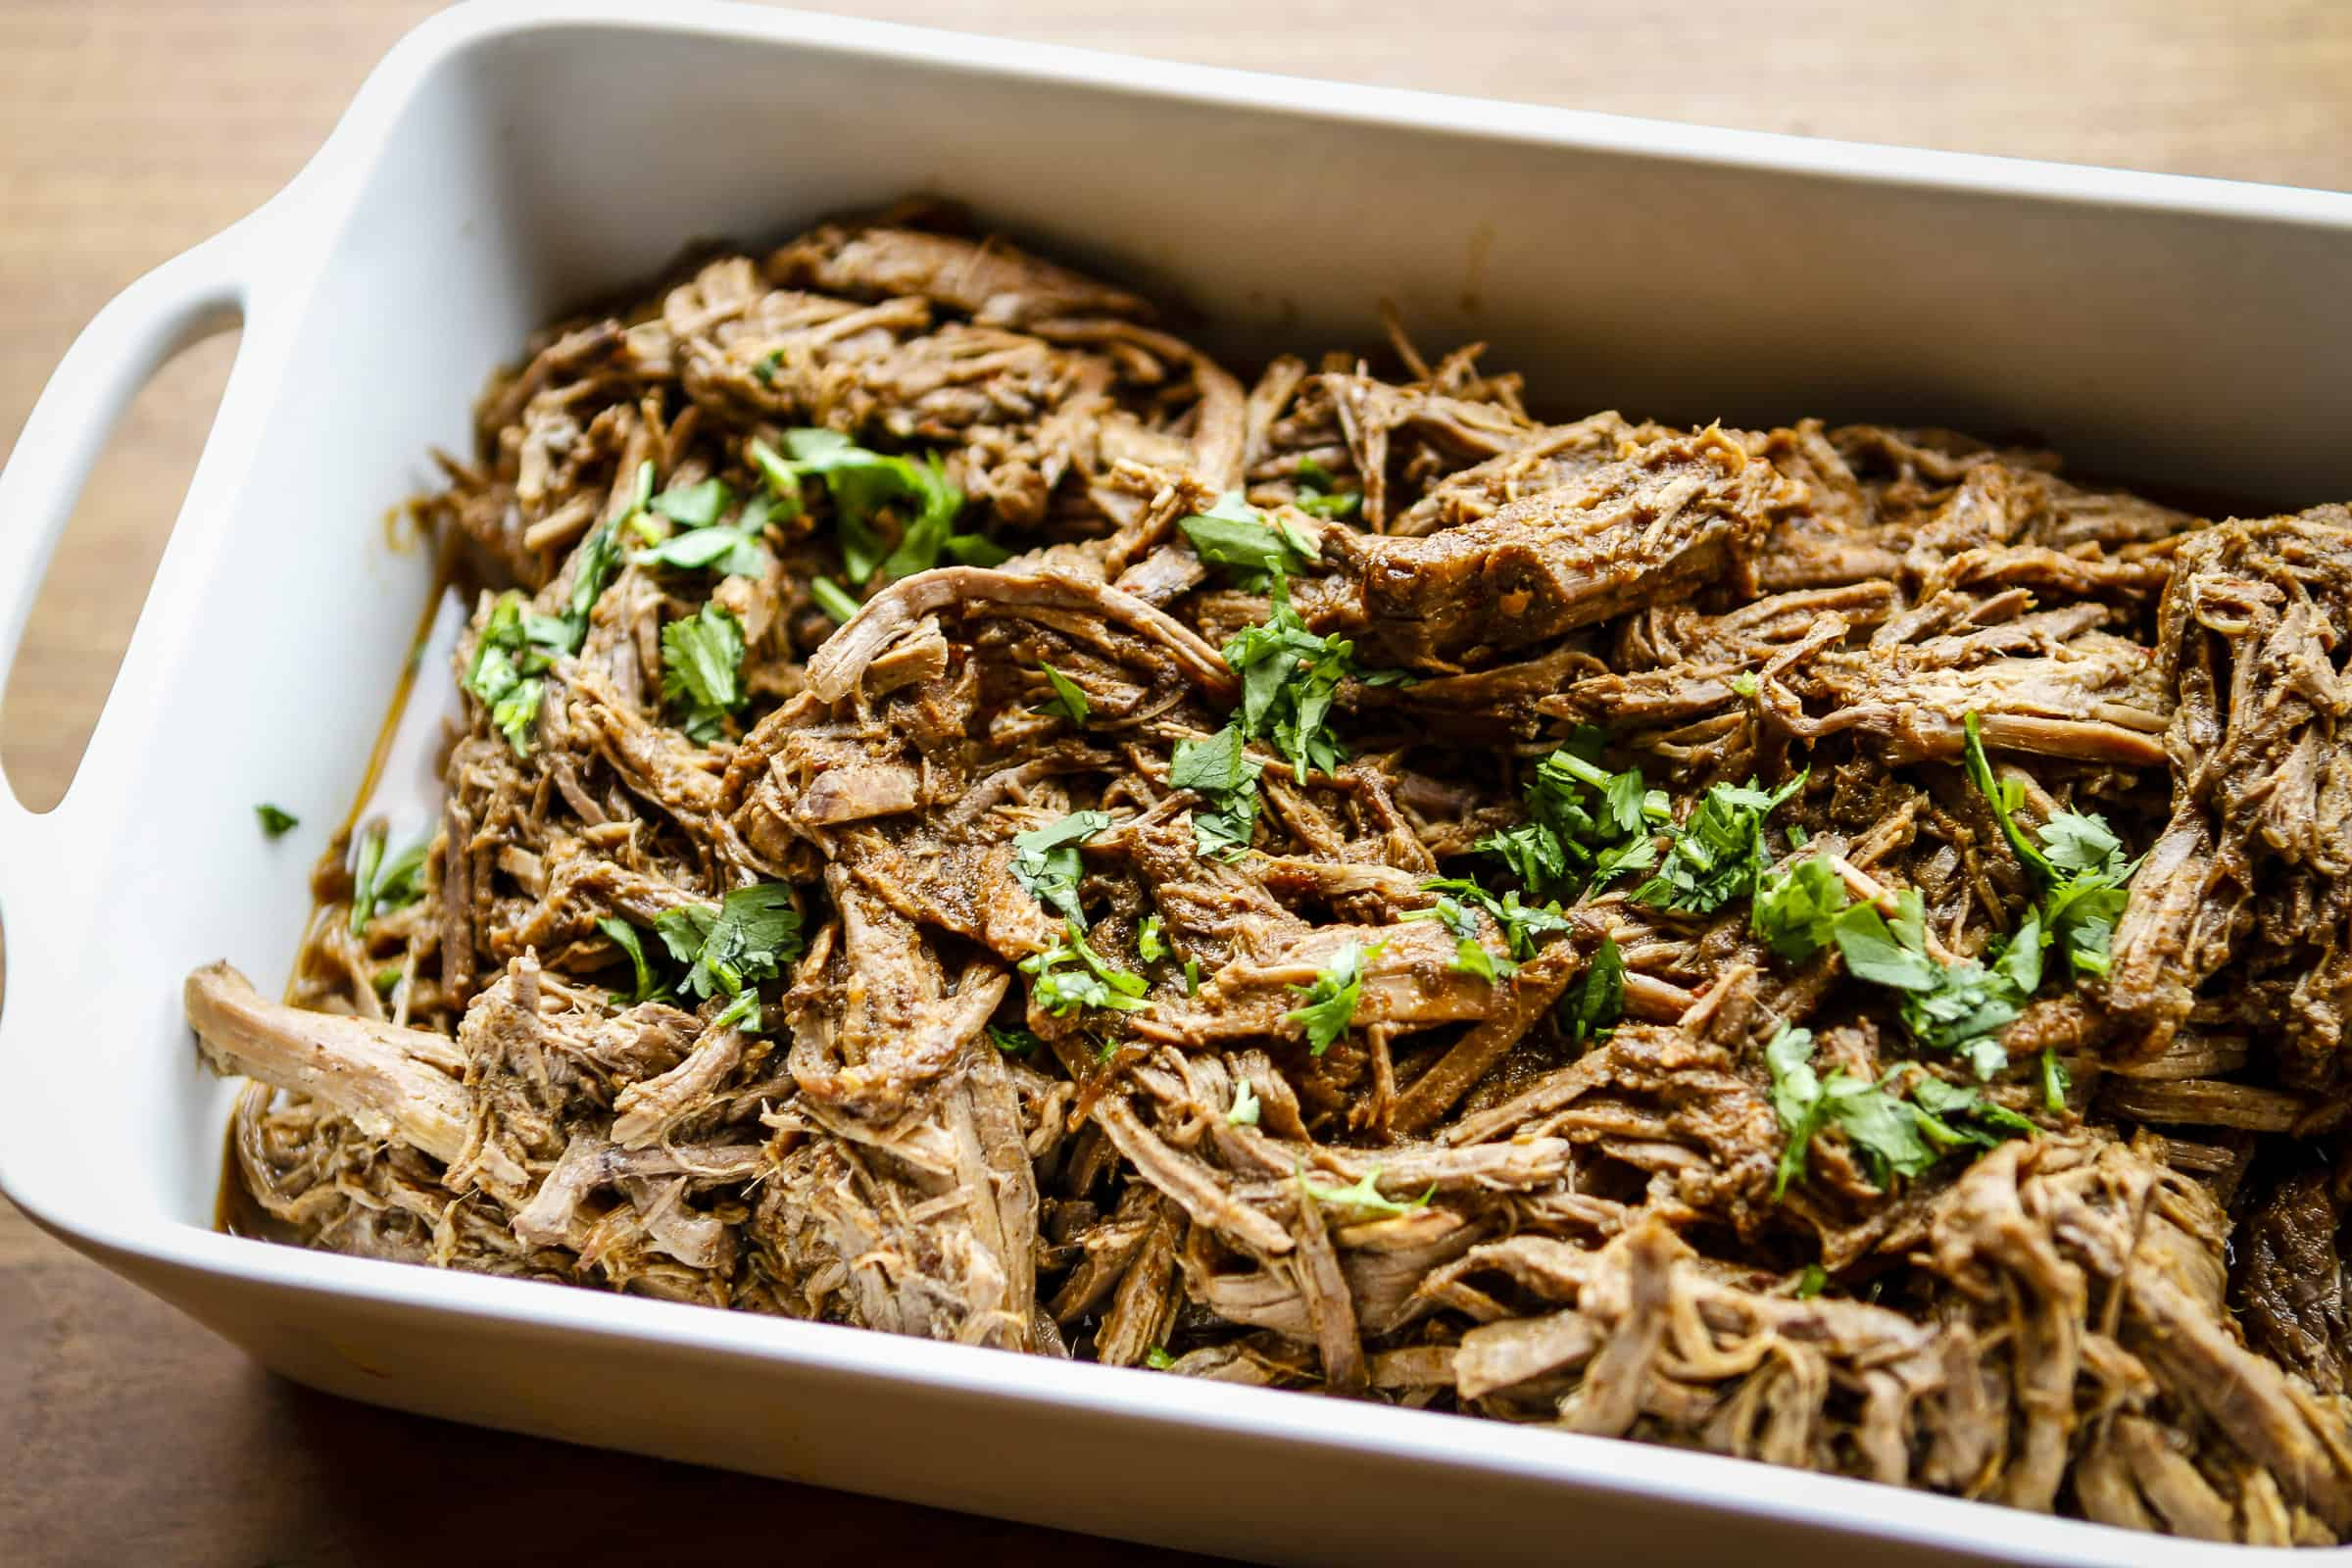 Slow Cooker Beef Barbacoa Recipe -- this copycat Chipotle slow cooker beef barbacoa smells ah-mazing and tastes even better! Perfect for tacos, burrito bowls, tostadas, and so much more. Ideal meal prep recipe! | beef barbacoa crockpot | beef barbacoa slow cooker | barbacoa chipotle | how do you make barbacoa meat | meal prep recipes | find the recipe on unsophisticook.com